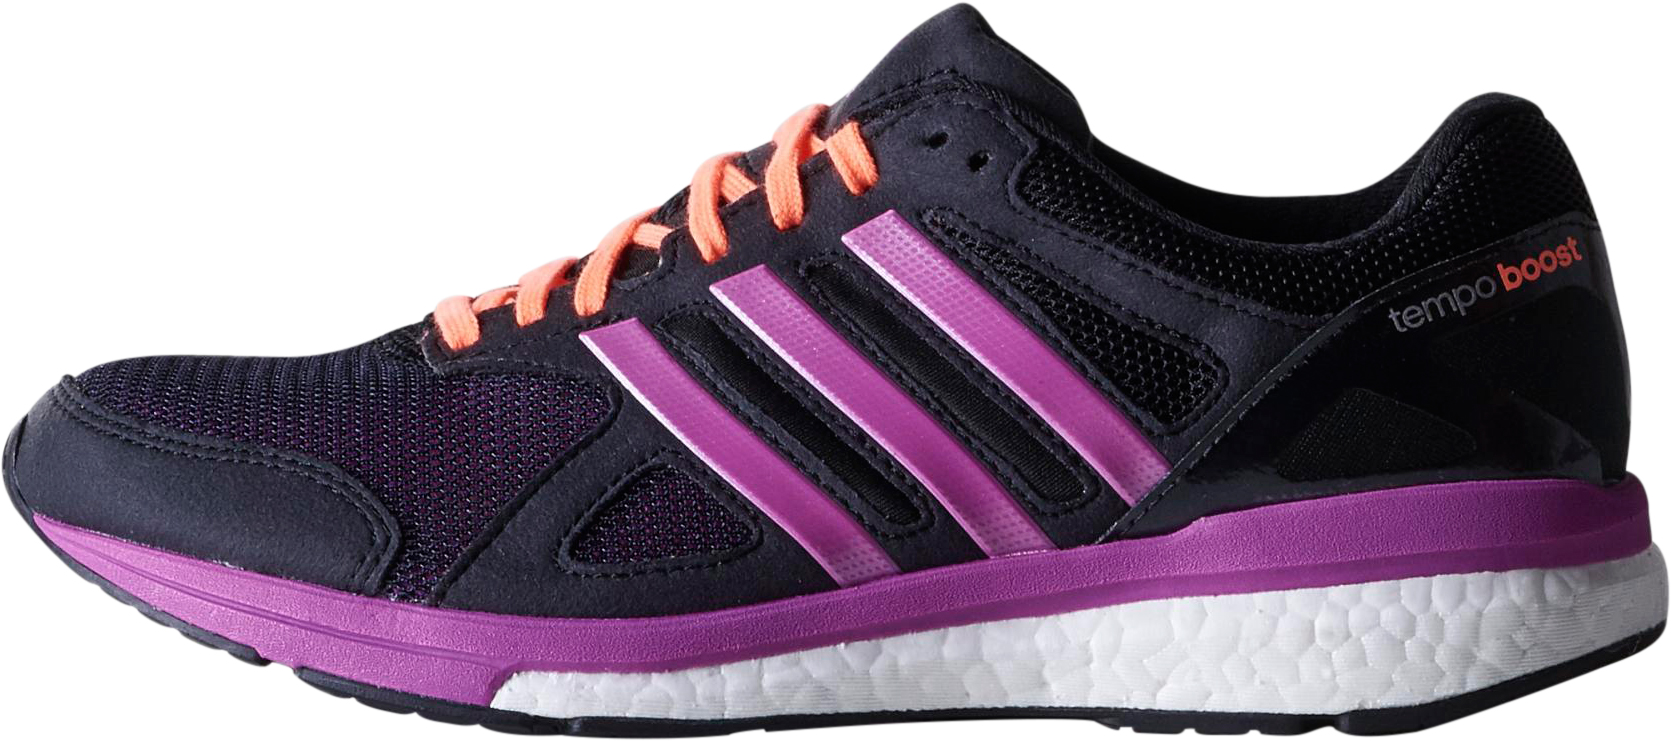 Womens Training Shoes Clearance